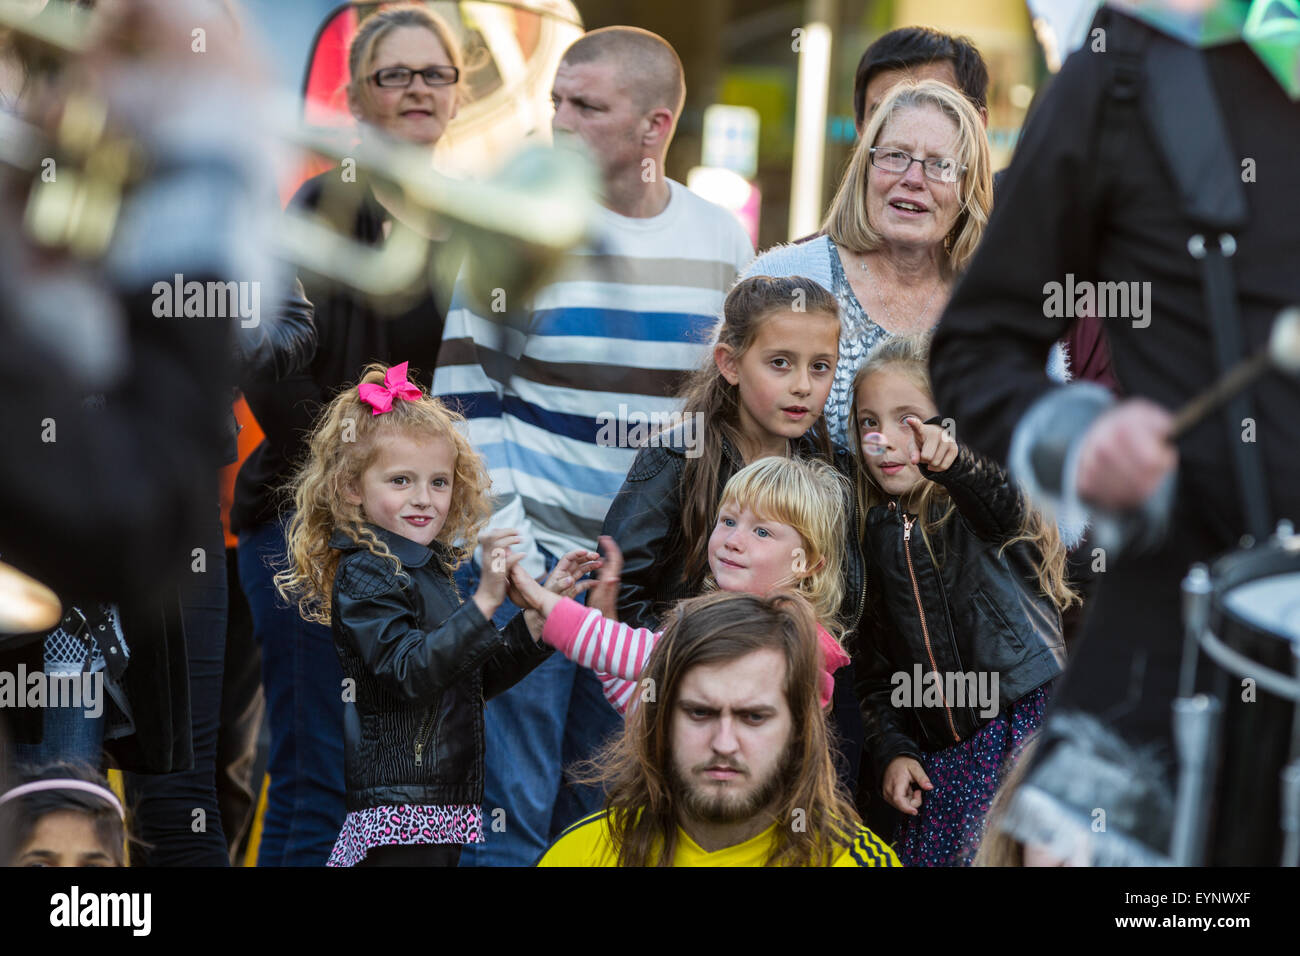 Stockton-on-Tees, UK, Saturday, 1st August, 2015. Young children watch closely as the Harlequin Dynamites perform - Stock Image